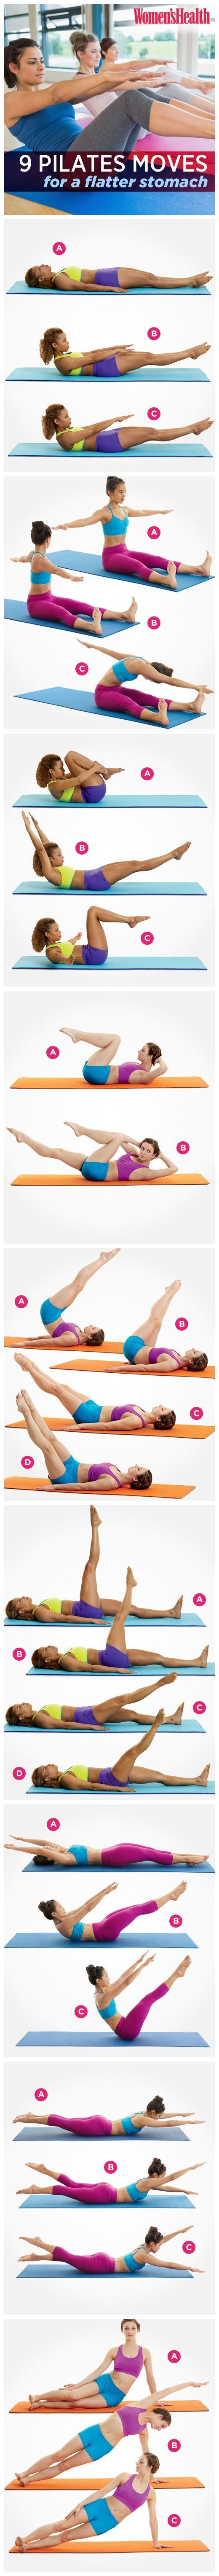 Pilates Exercises for a Tighter Tummy  Pilates moves Workout and